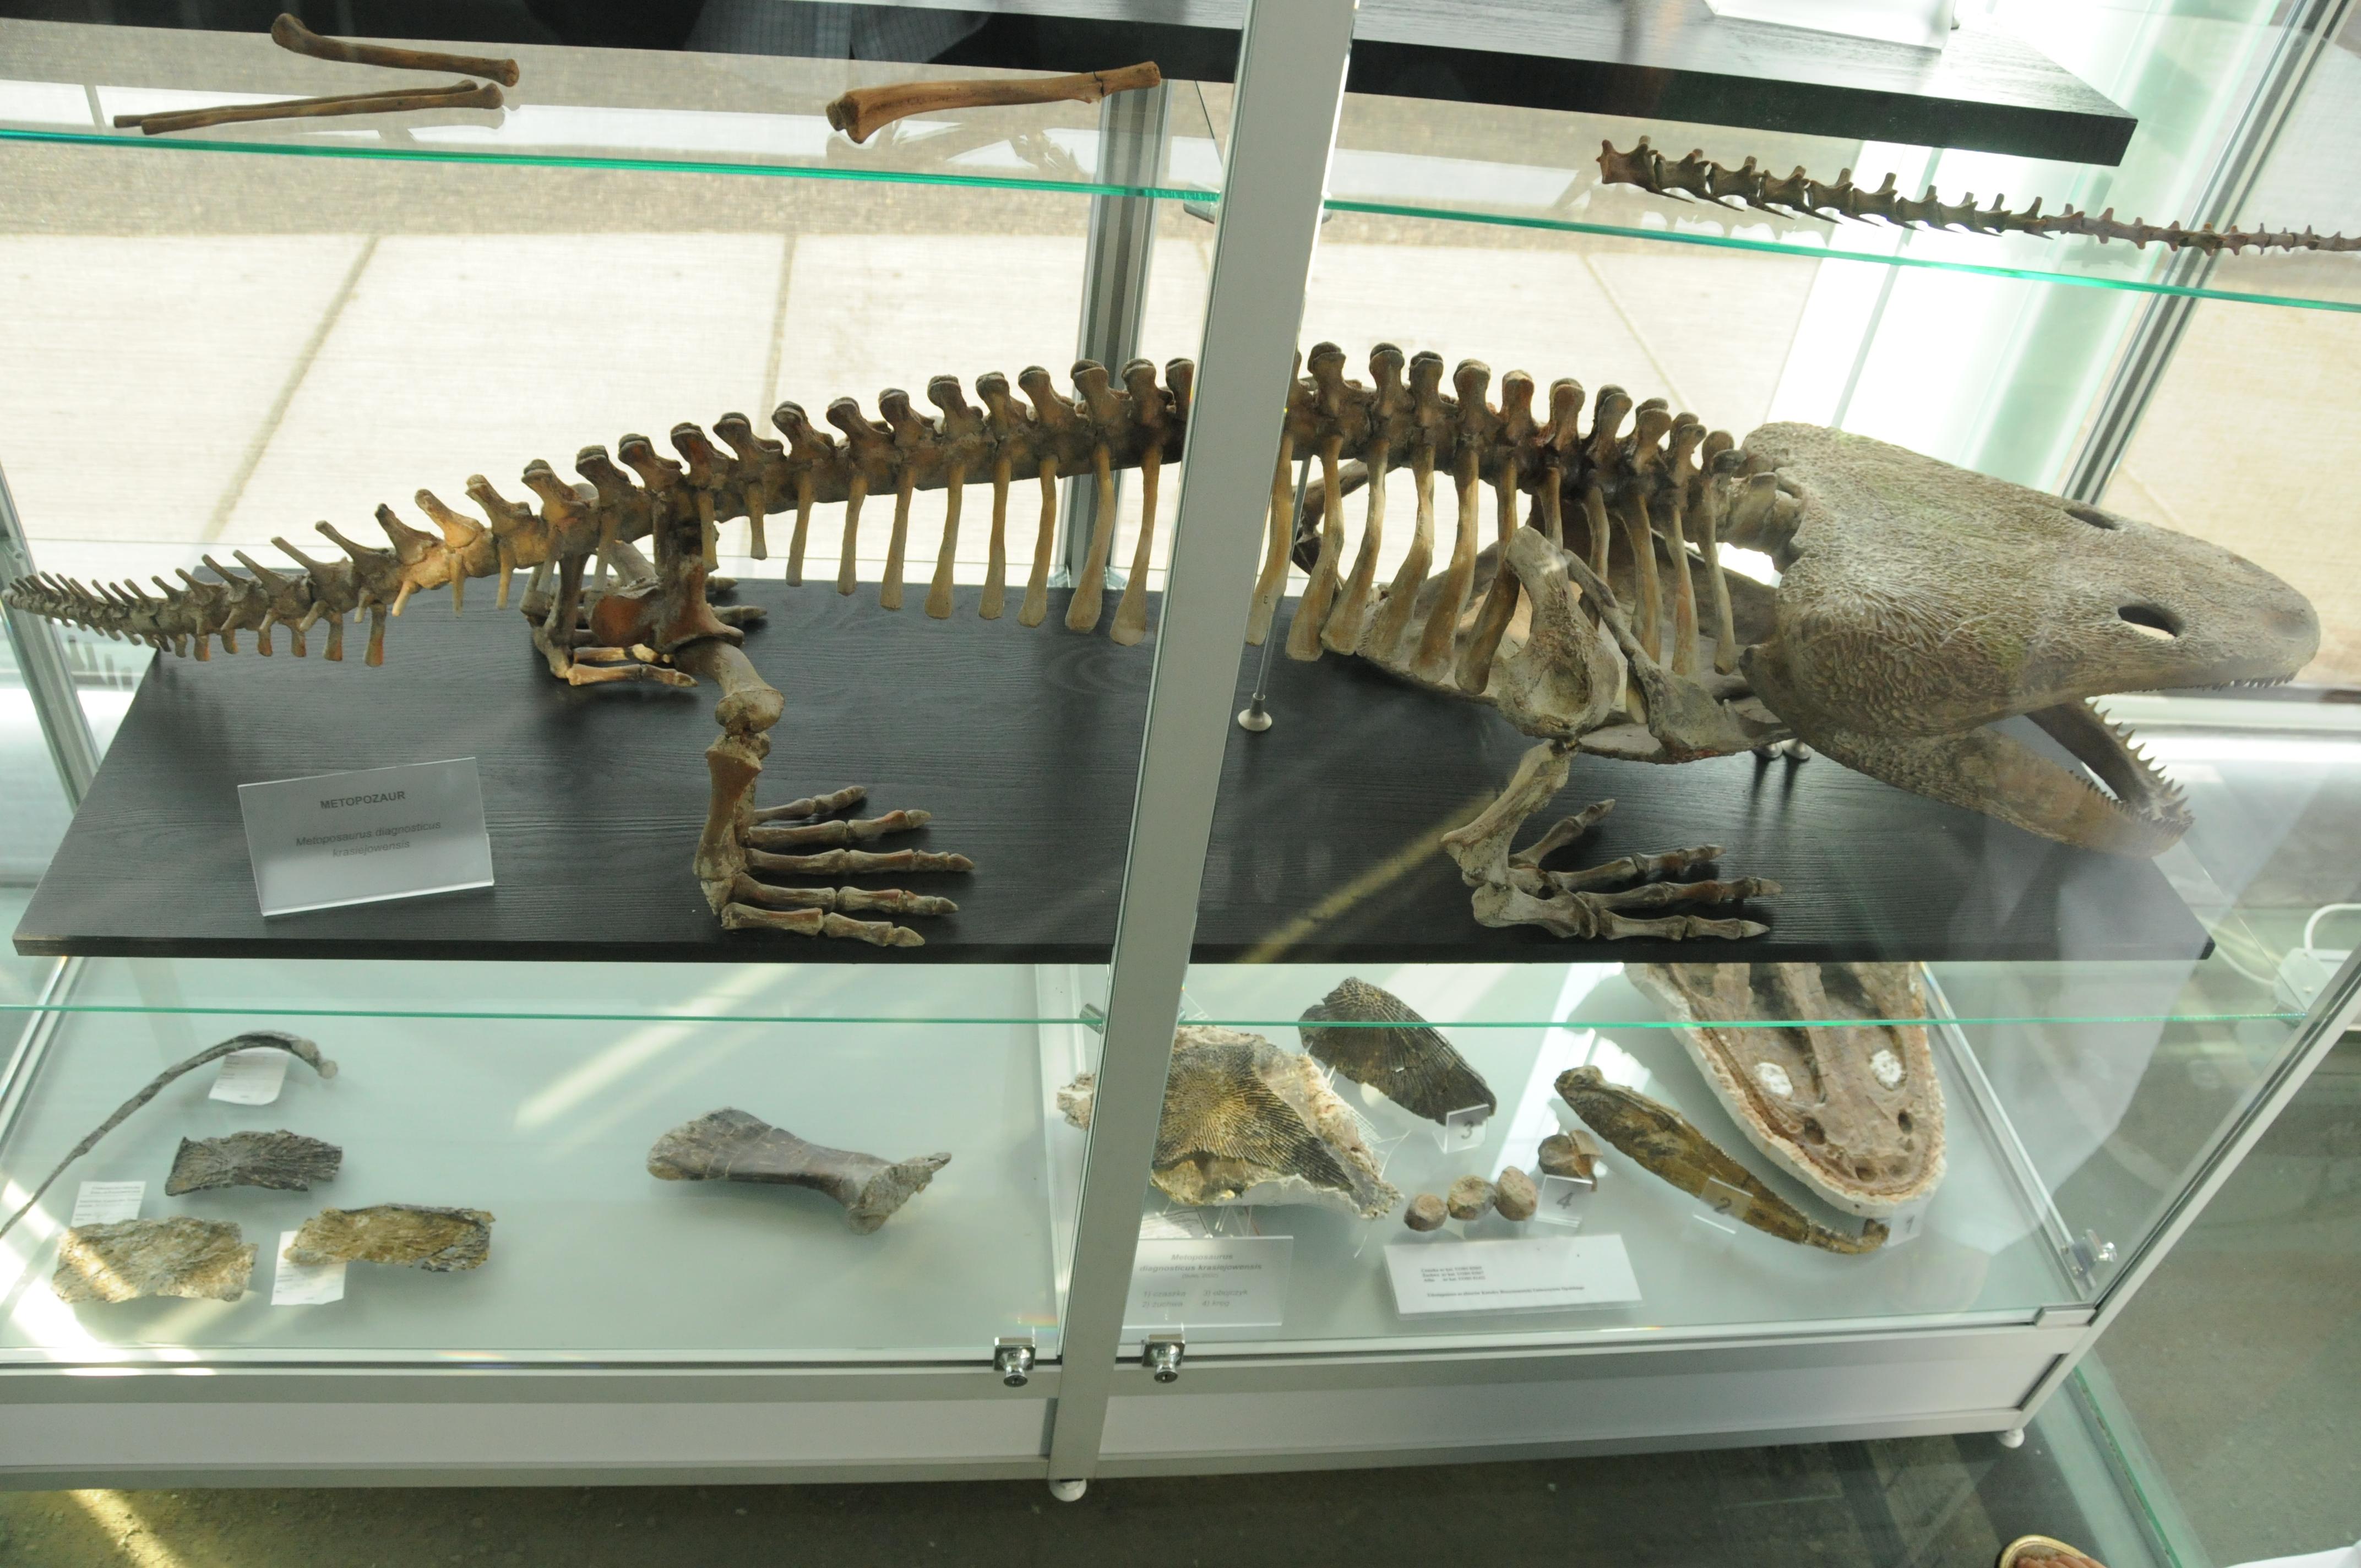 Skeleton of Metoposaurus diagnosticus krasiejowensi in the Krasiejów museum in Poland